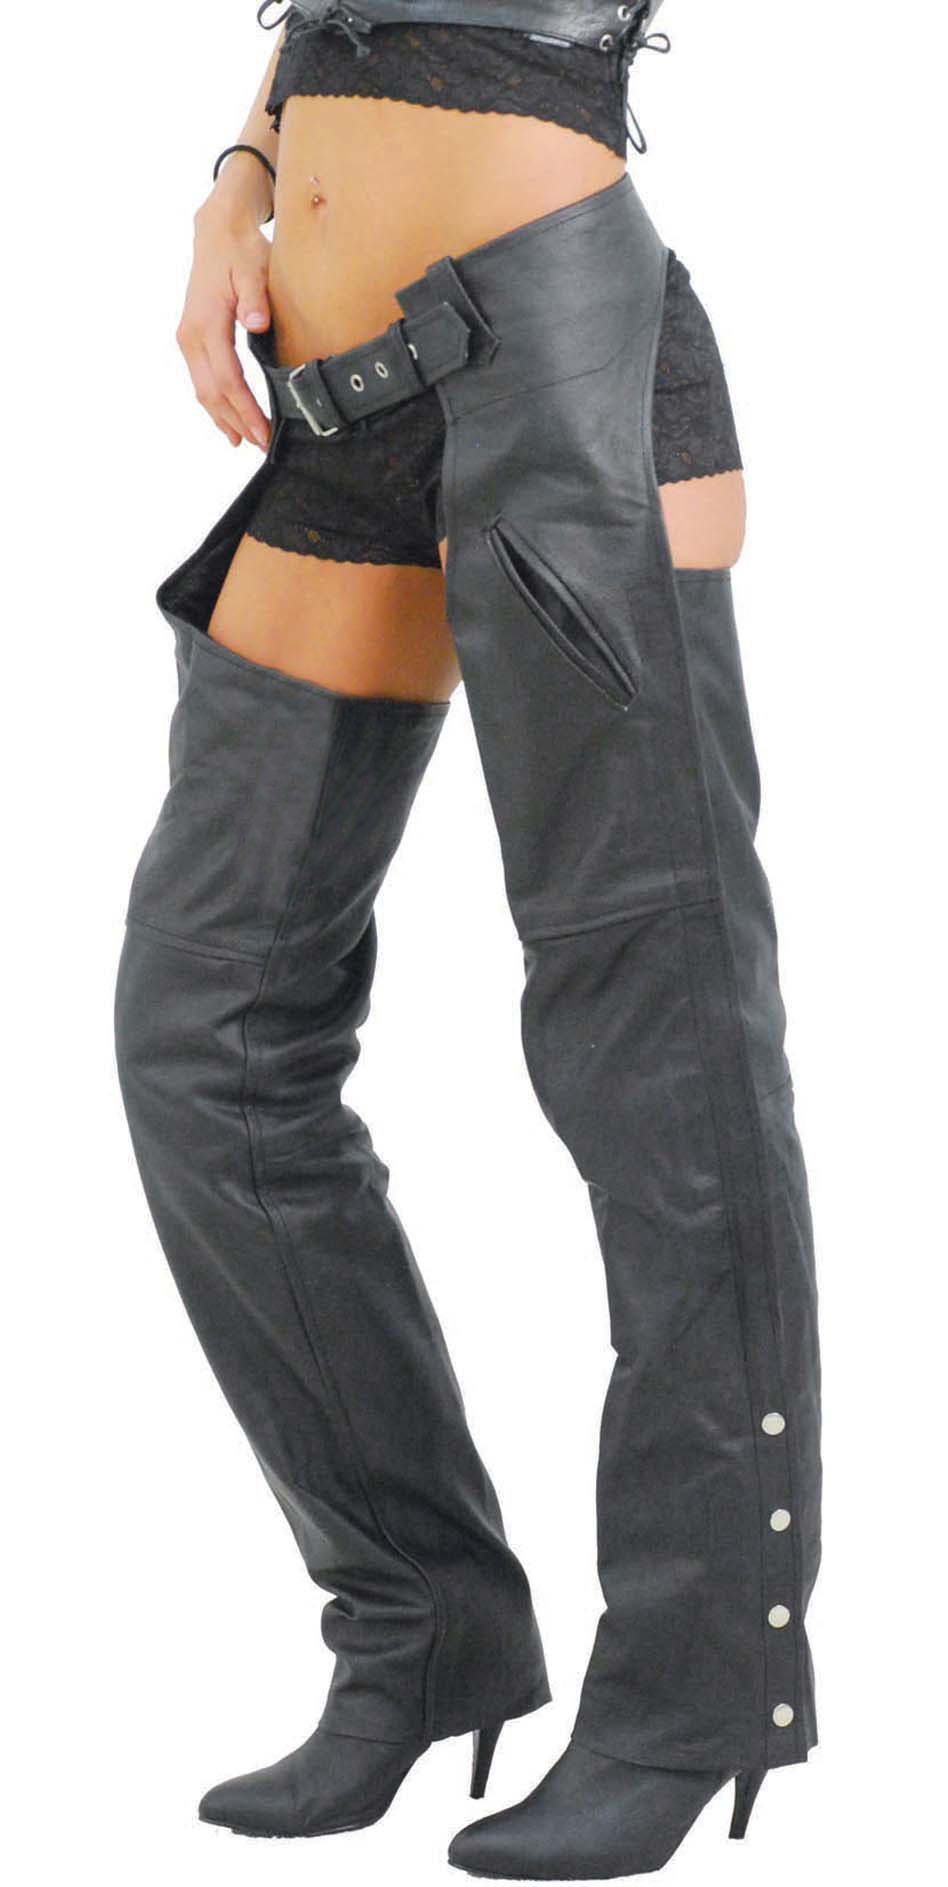 Lady biker wearing a pair of classic ladies leather chaps